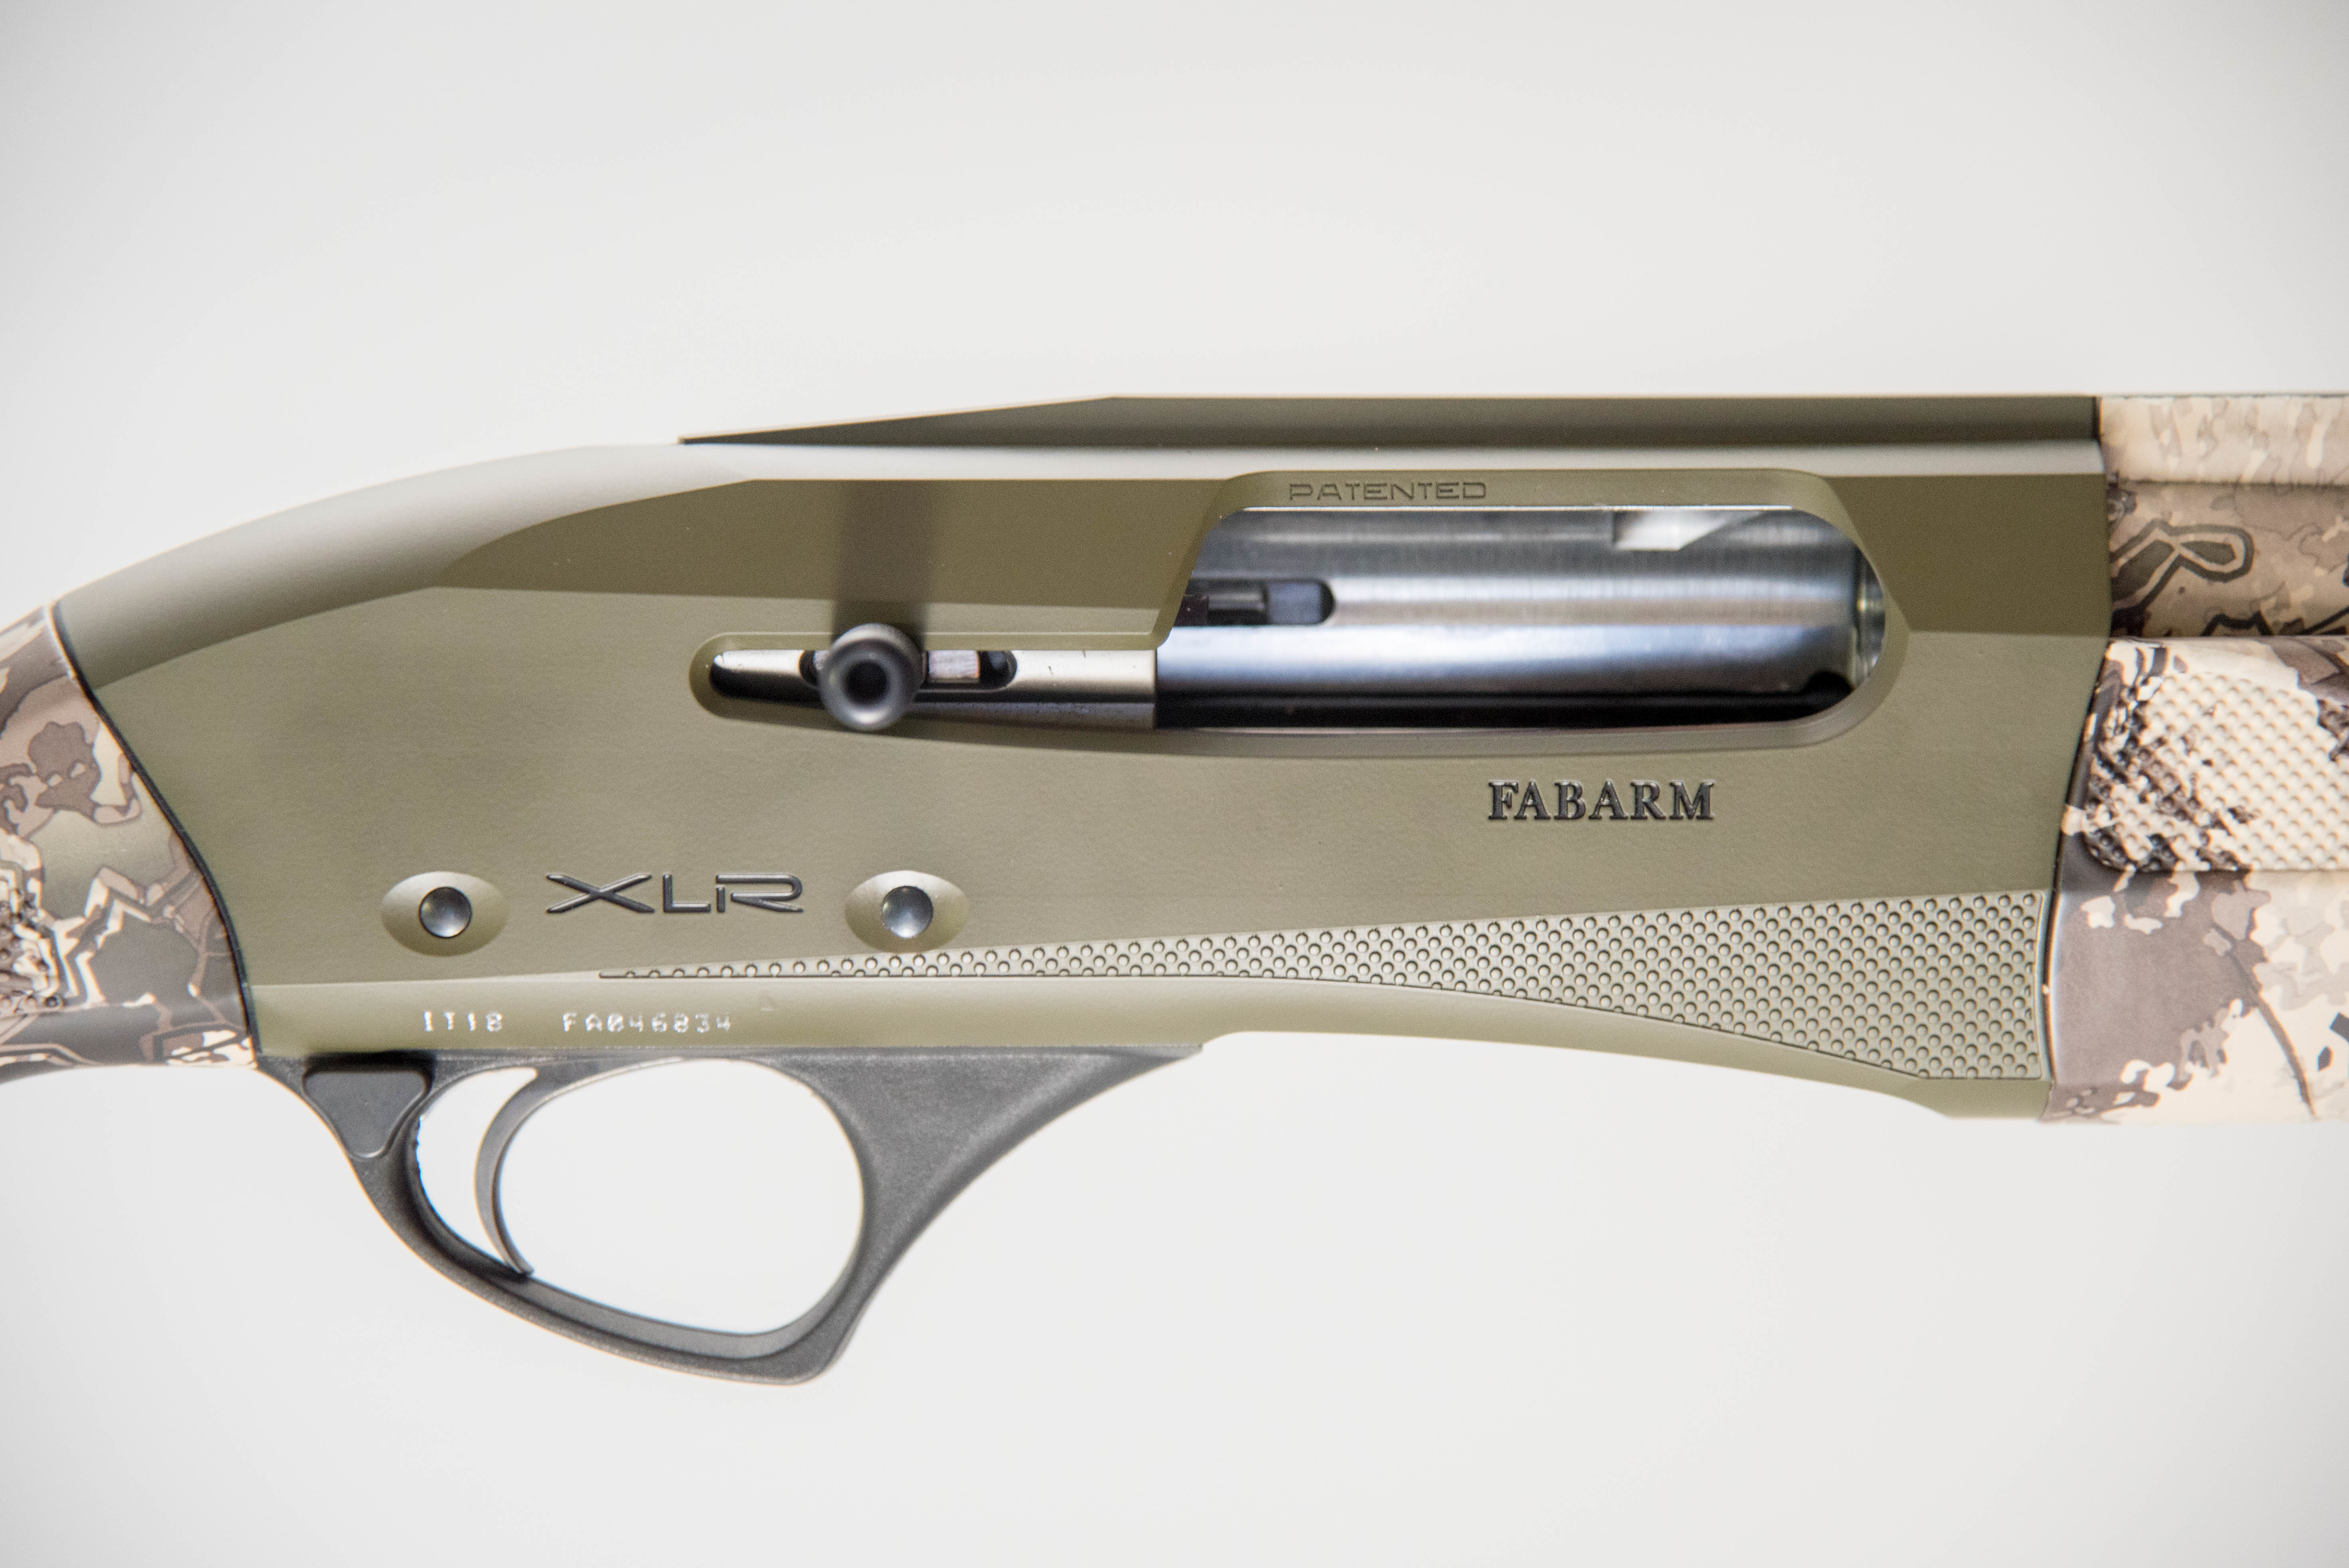 "Fabarm XLR Waterfowler True Timber Viper 12GA 28"" 4467"